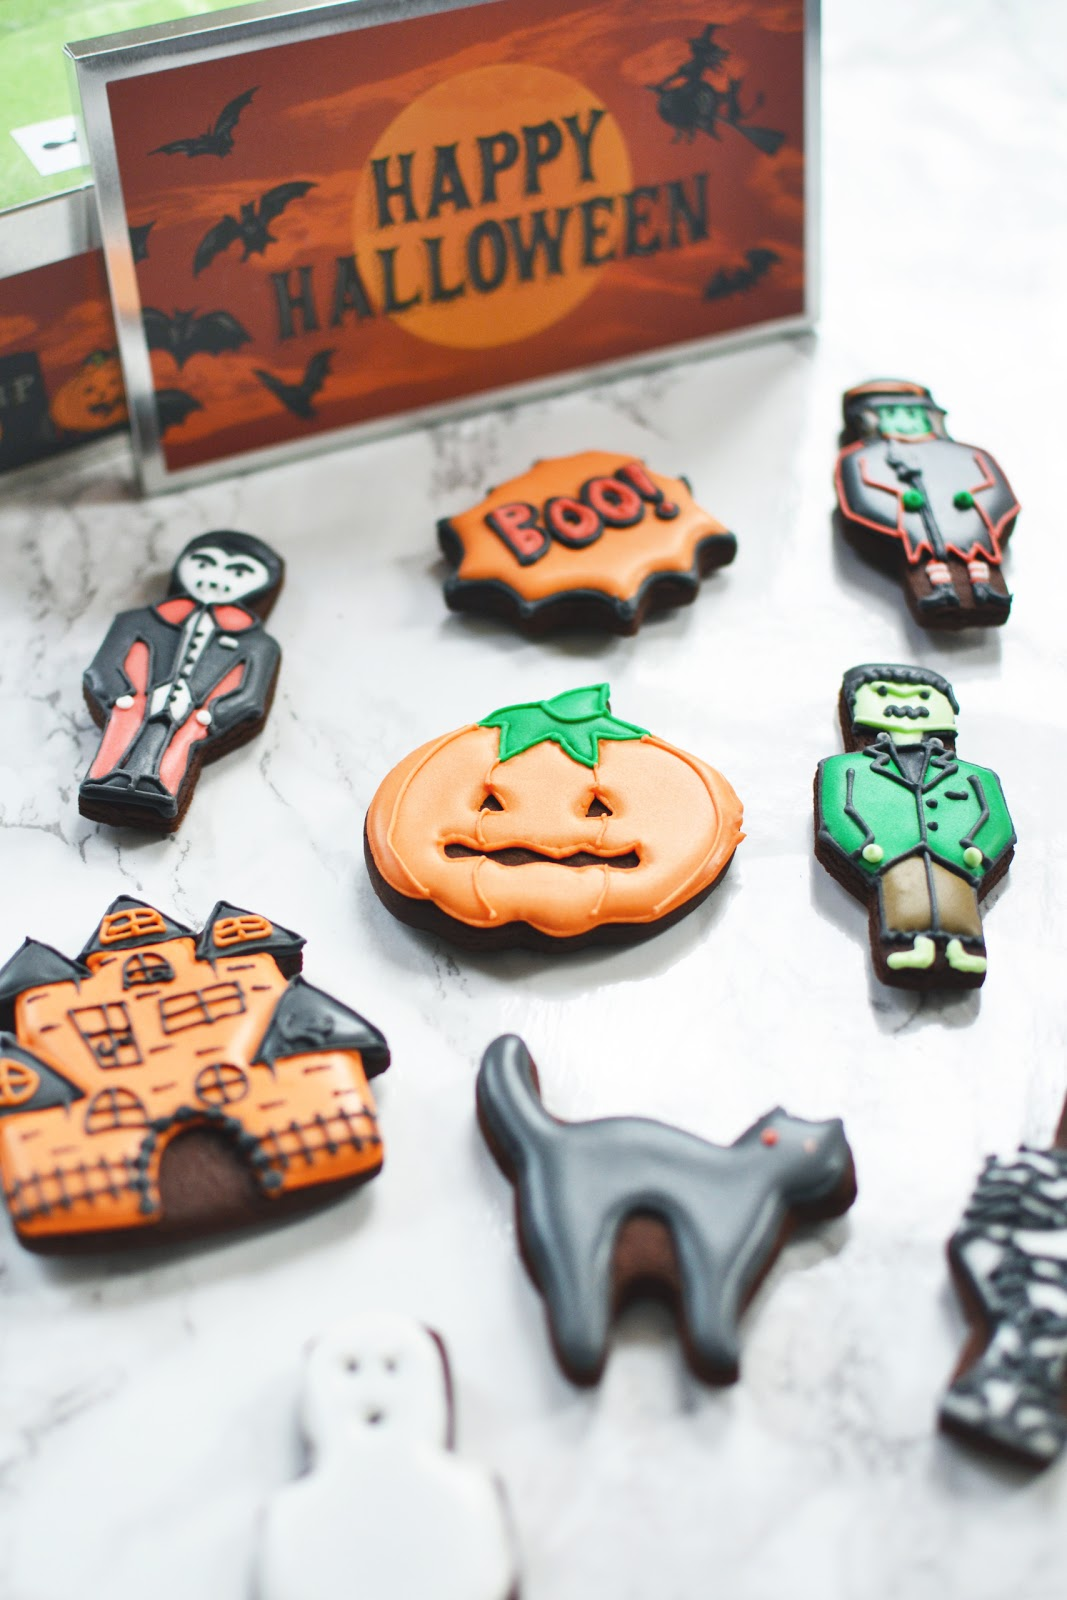 Halloween biscuits, ice biscuits from biscuiteers